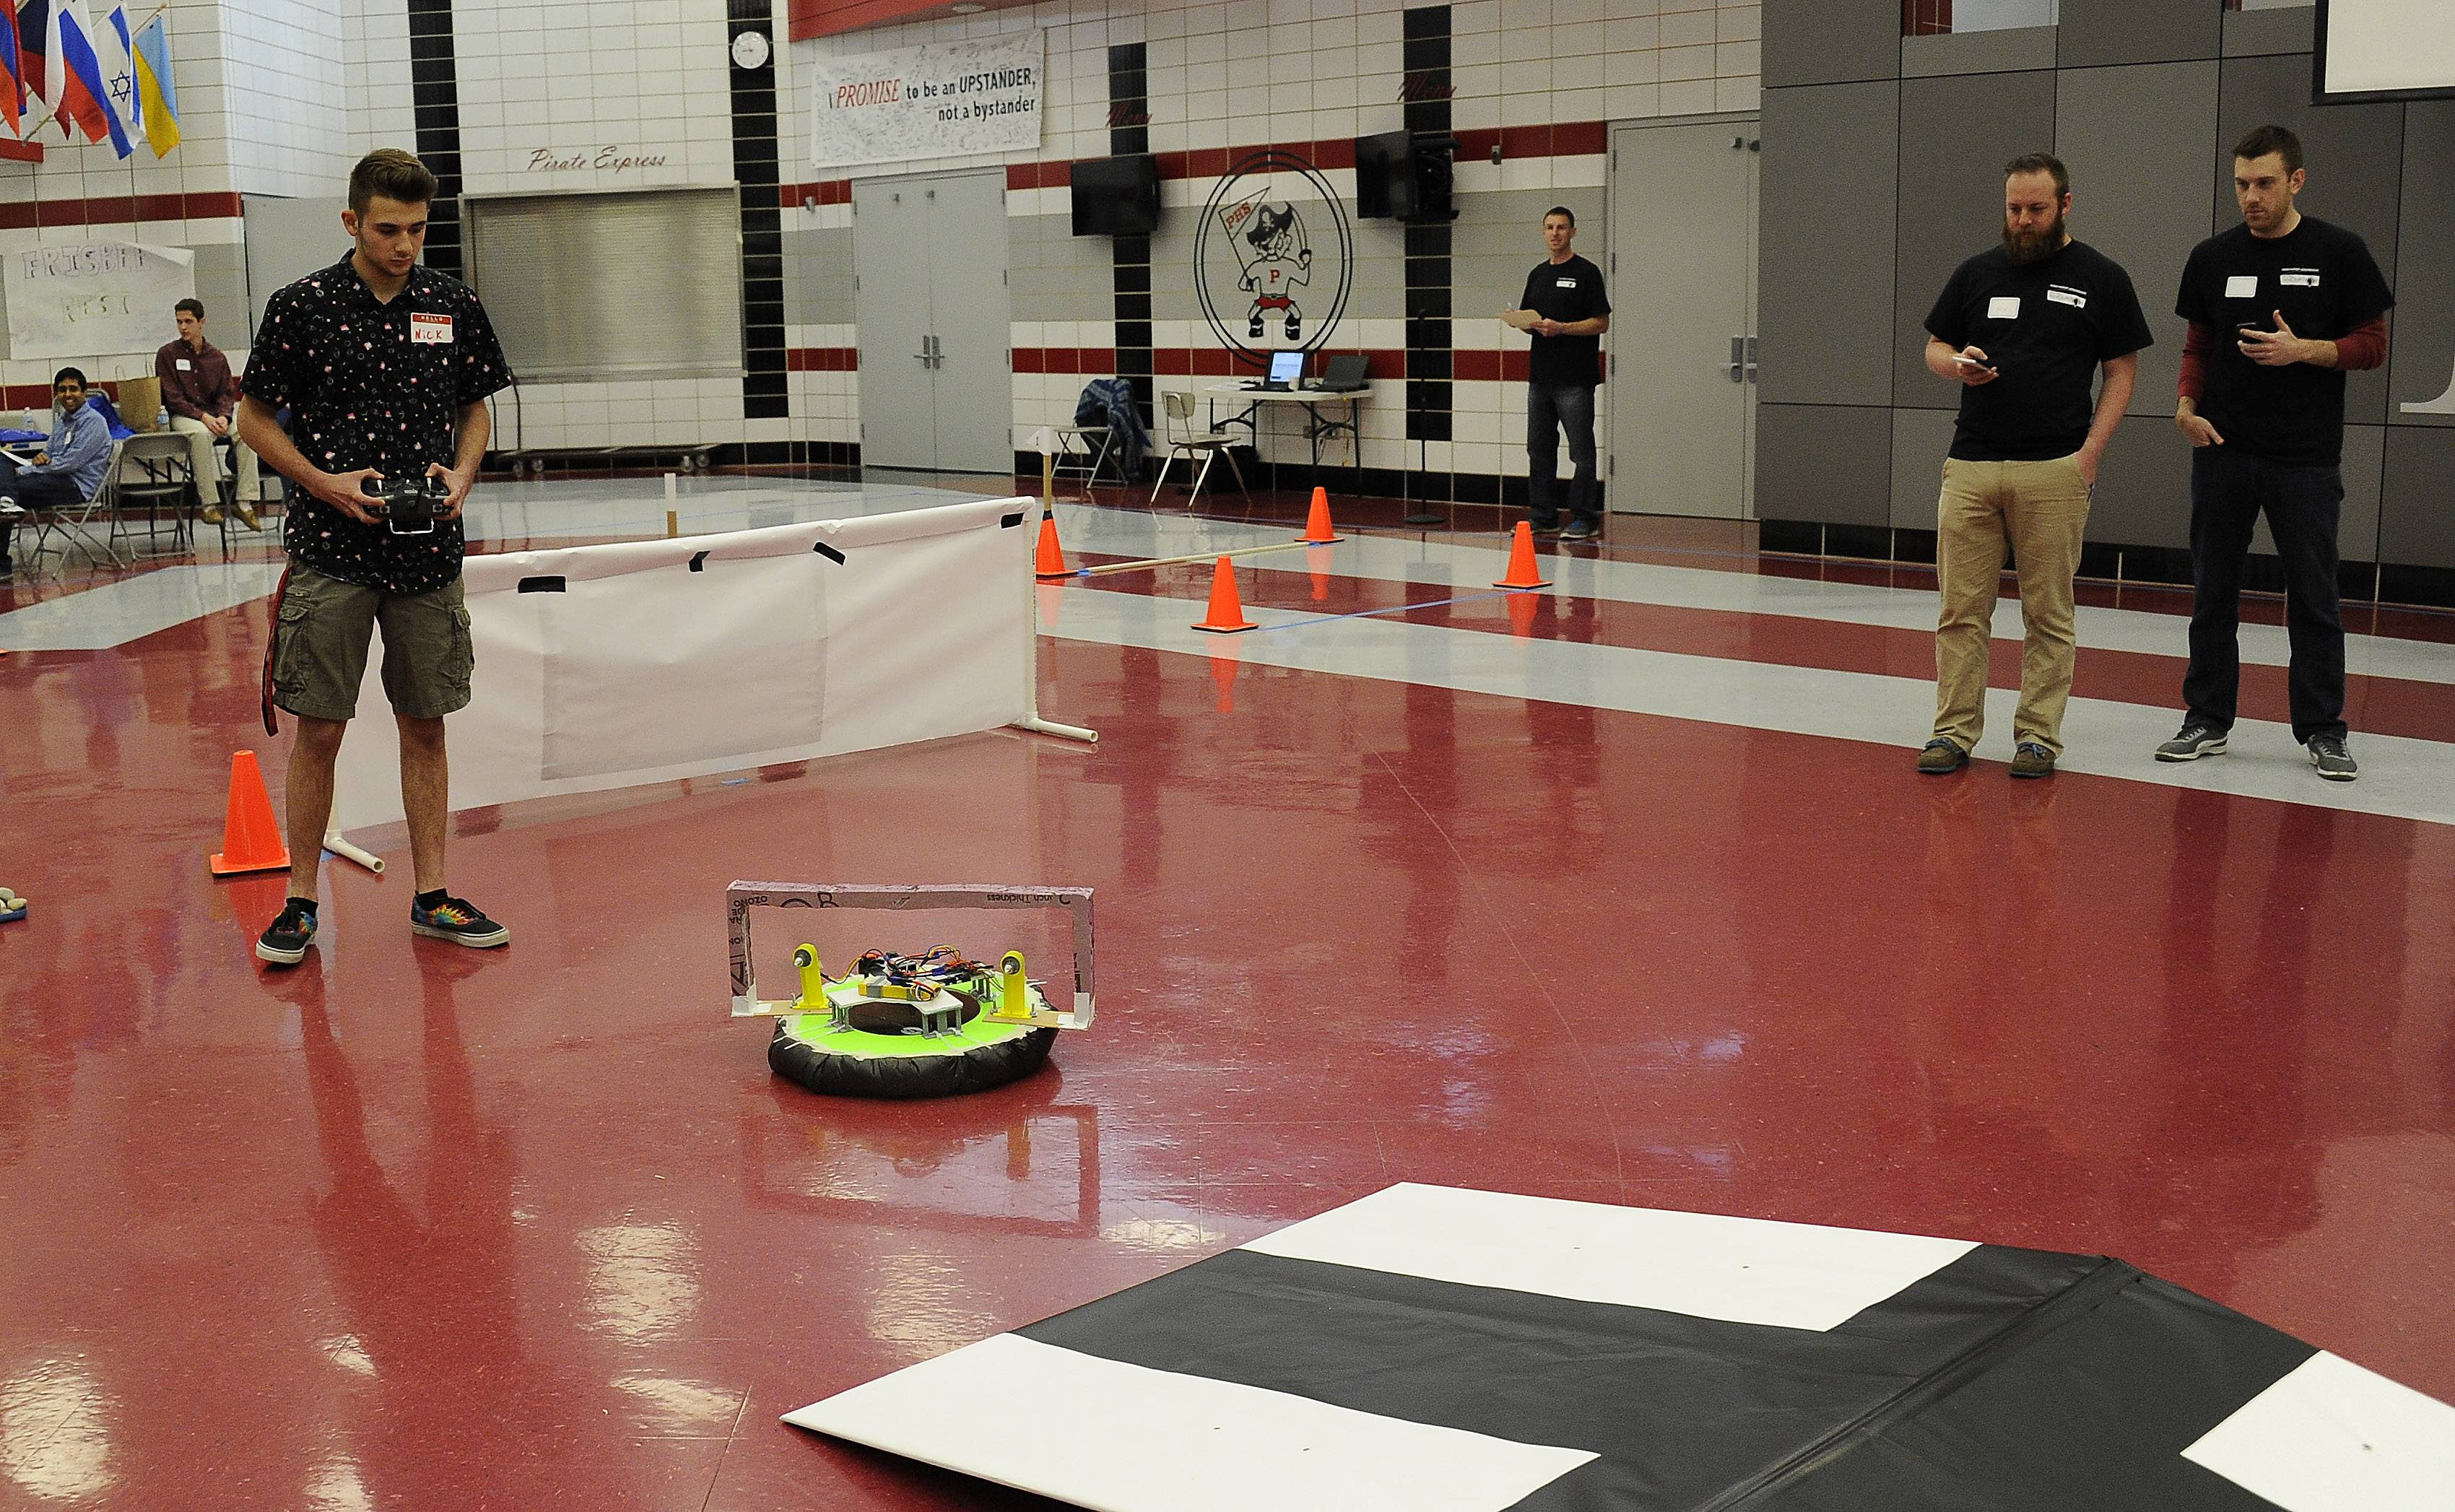 Palatine High School student Nick Losch pilots his team's hovercraft through a maze of challenges at the 2016 High School Innovation Challenge, which was sponsored by Northrop Grumman.